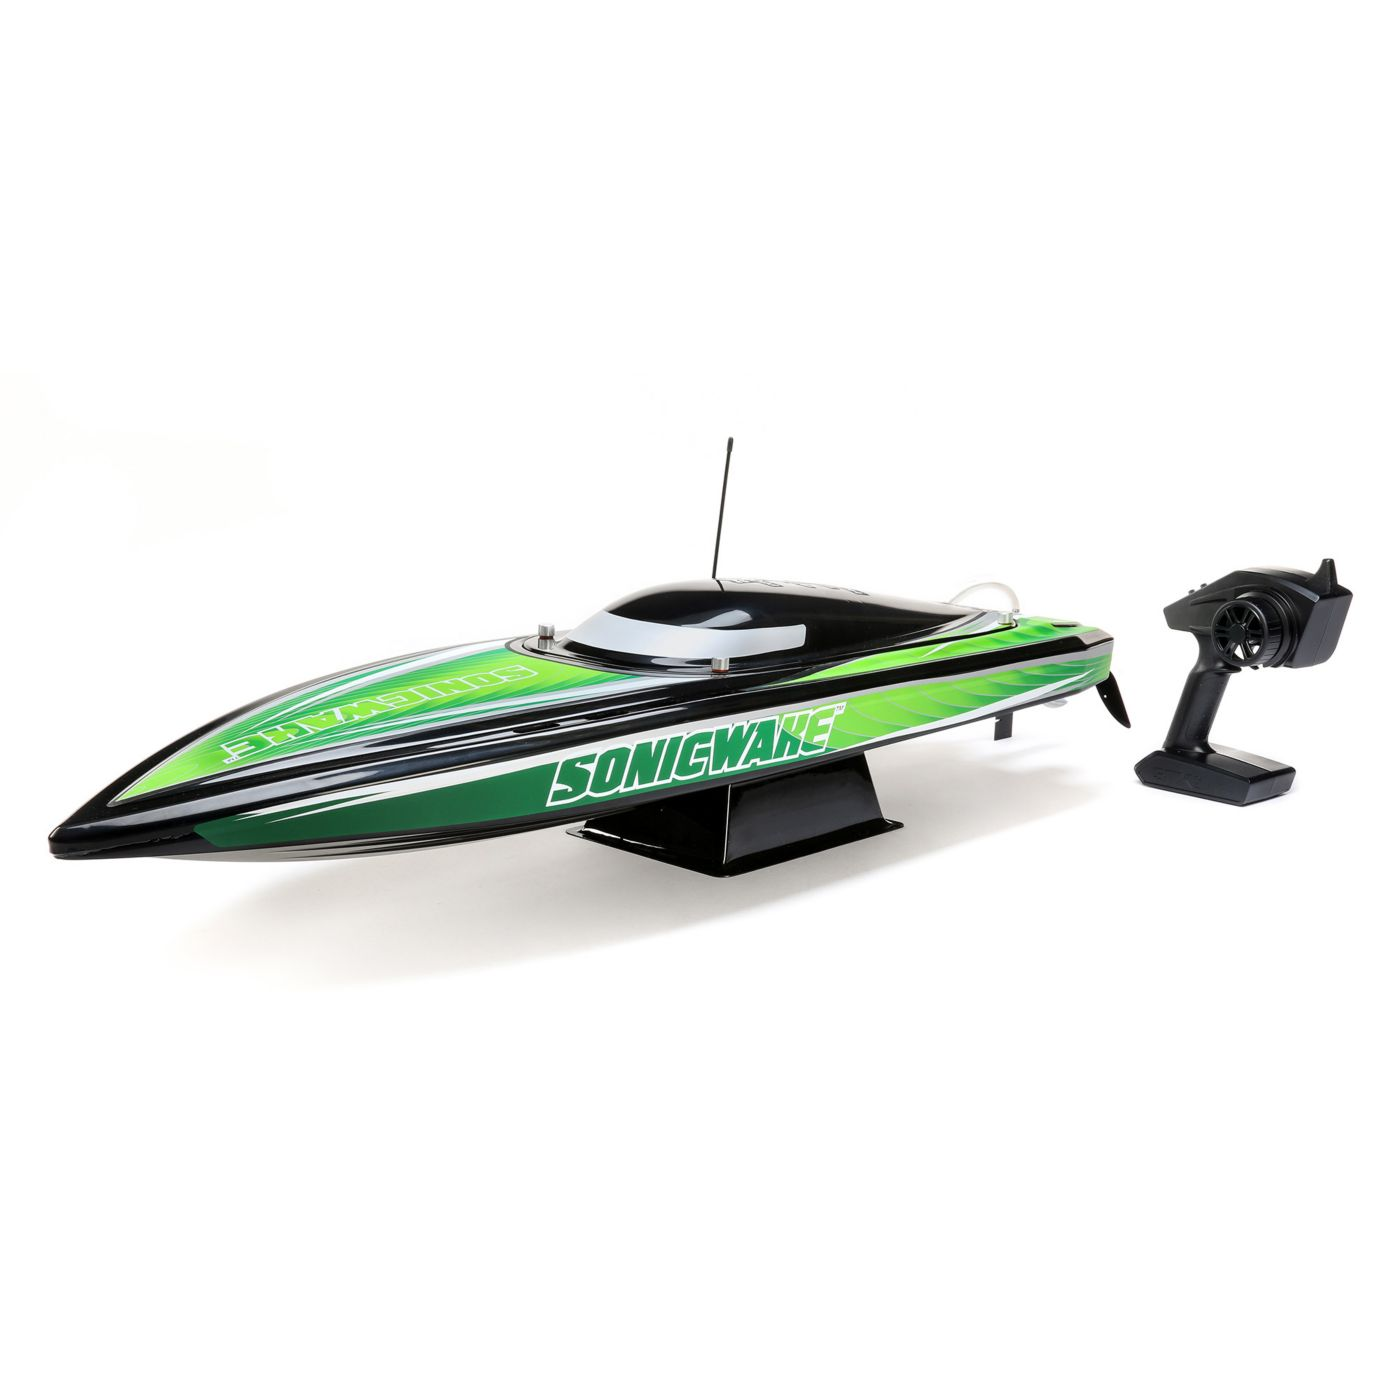 Proboat Sonicwake 36 Deep-V Self-Righting Brushless Boat RTR 5